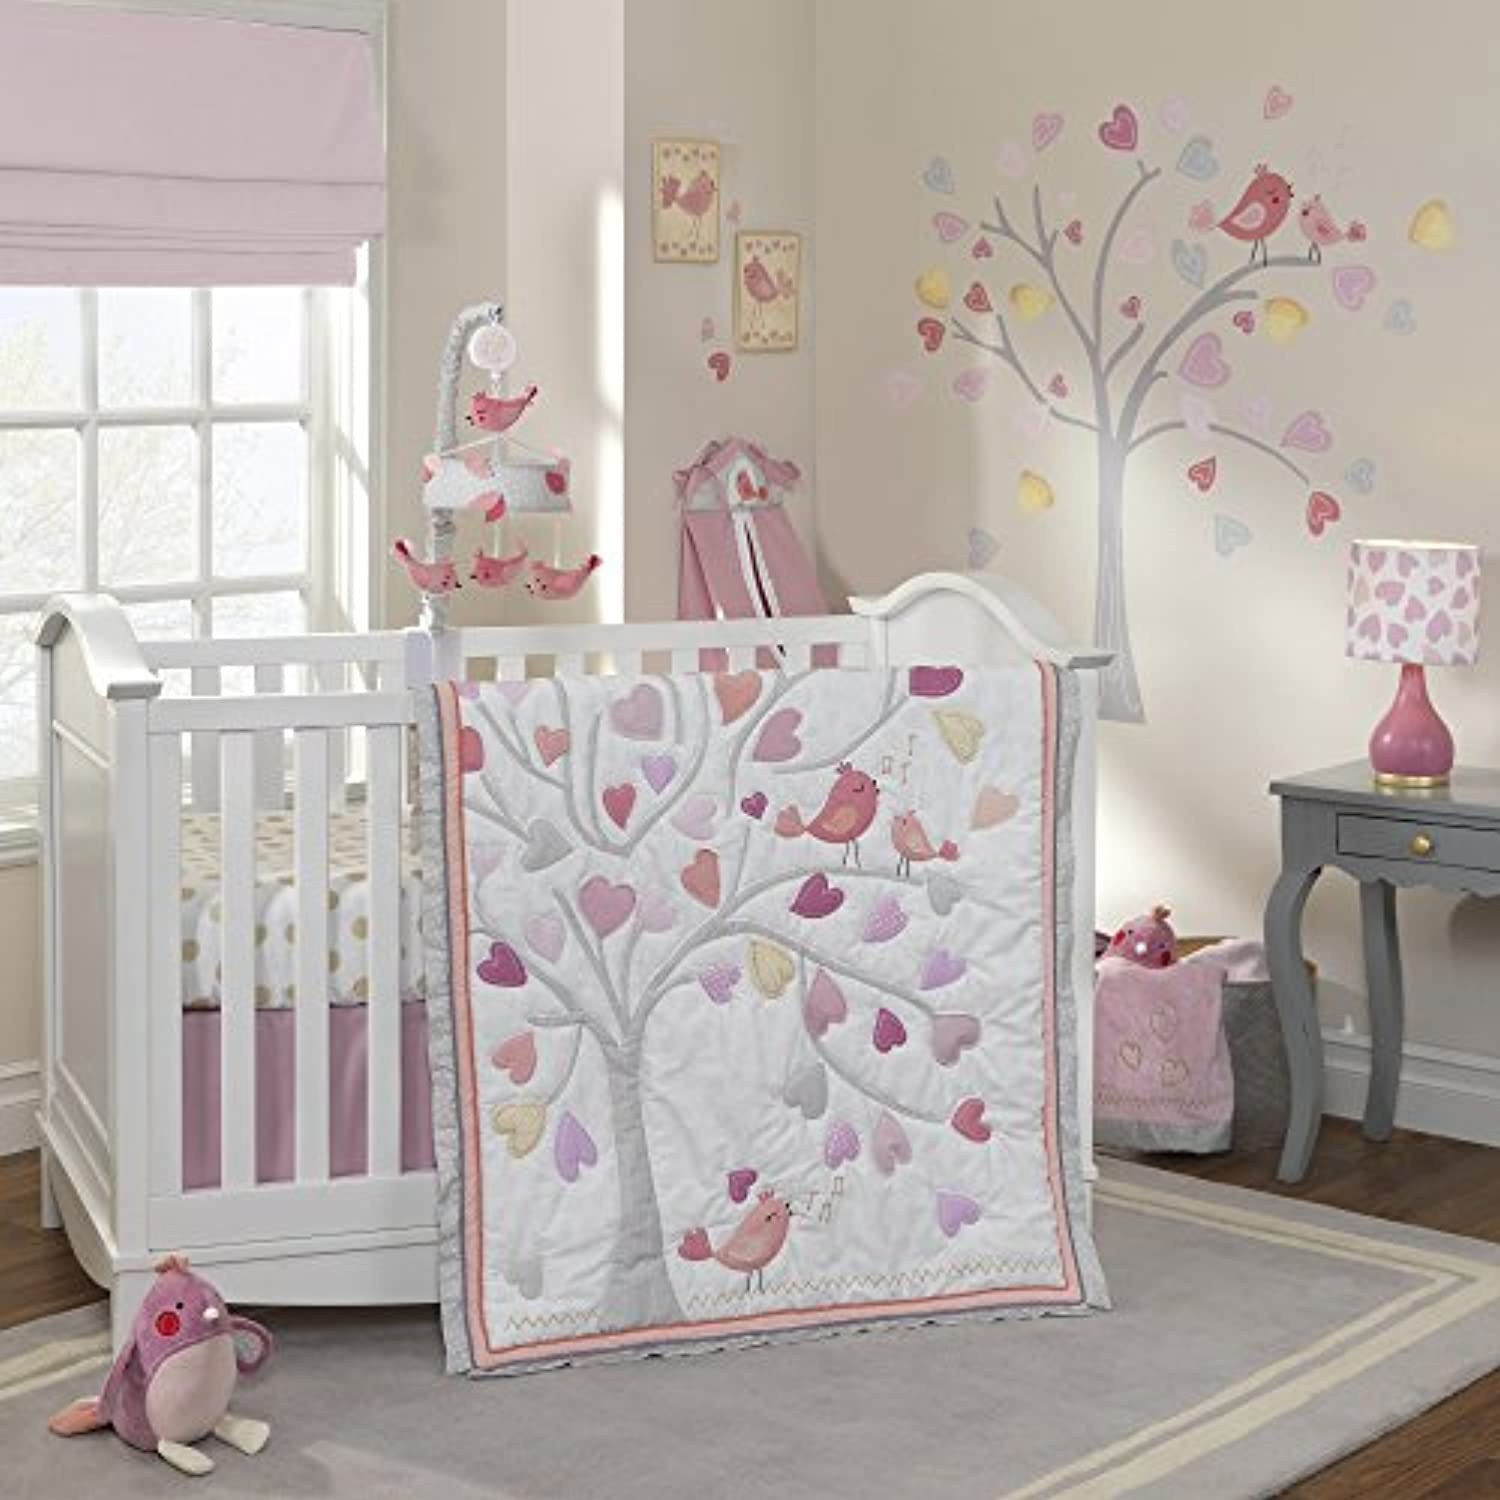 Lambs & Ivy Love Song 4-Piece Crib Bedding Set by Lambs & Ivy